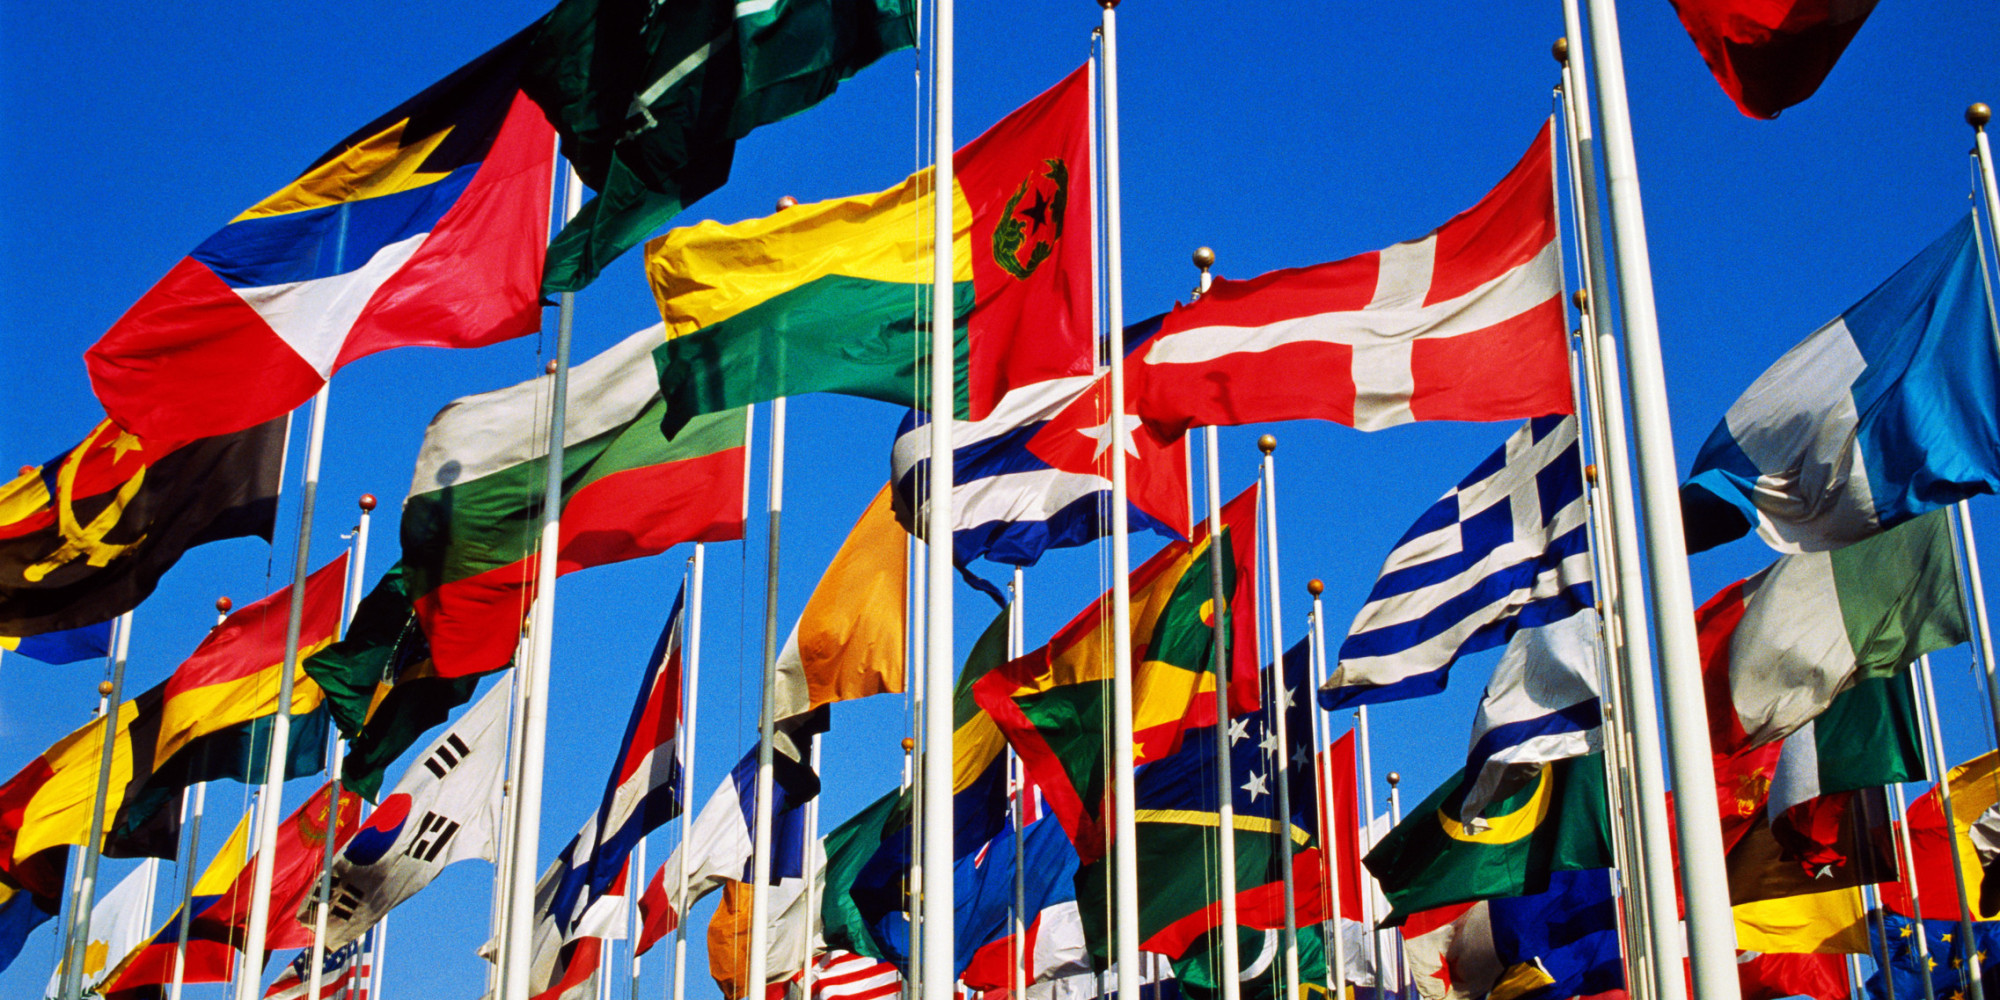 United Nations Flags With Names Millennials Nam...